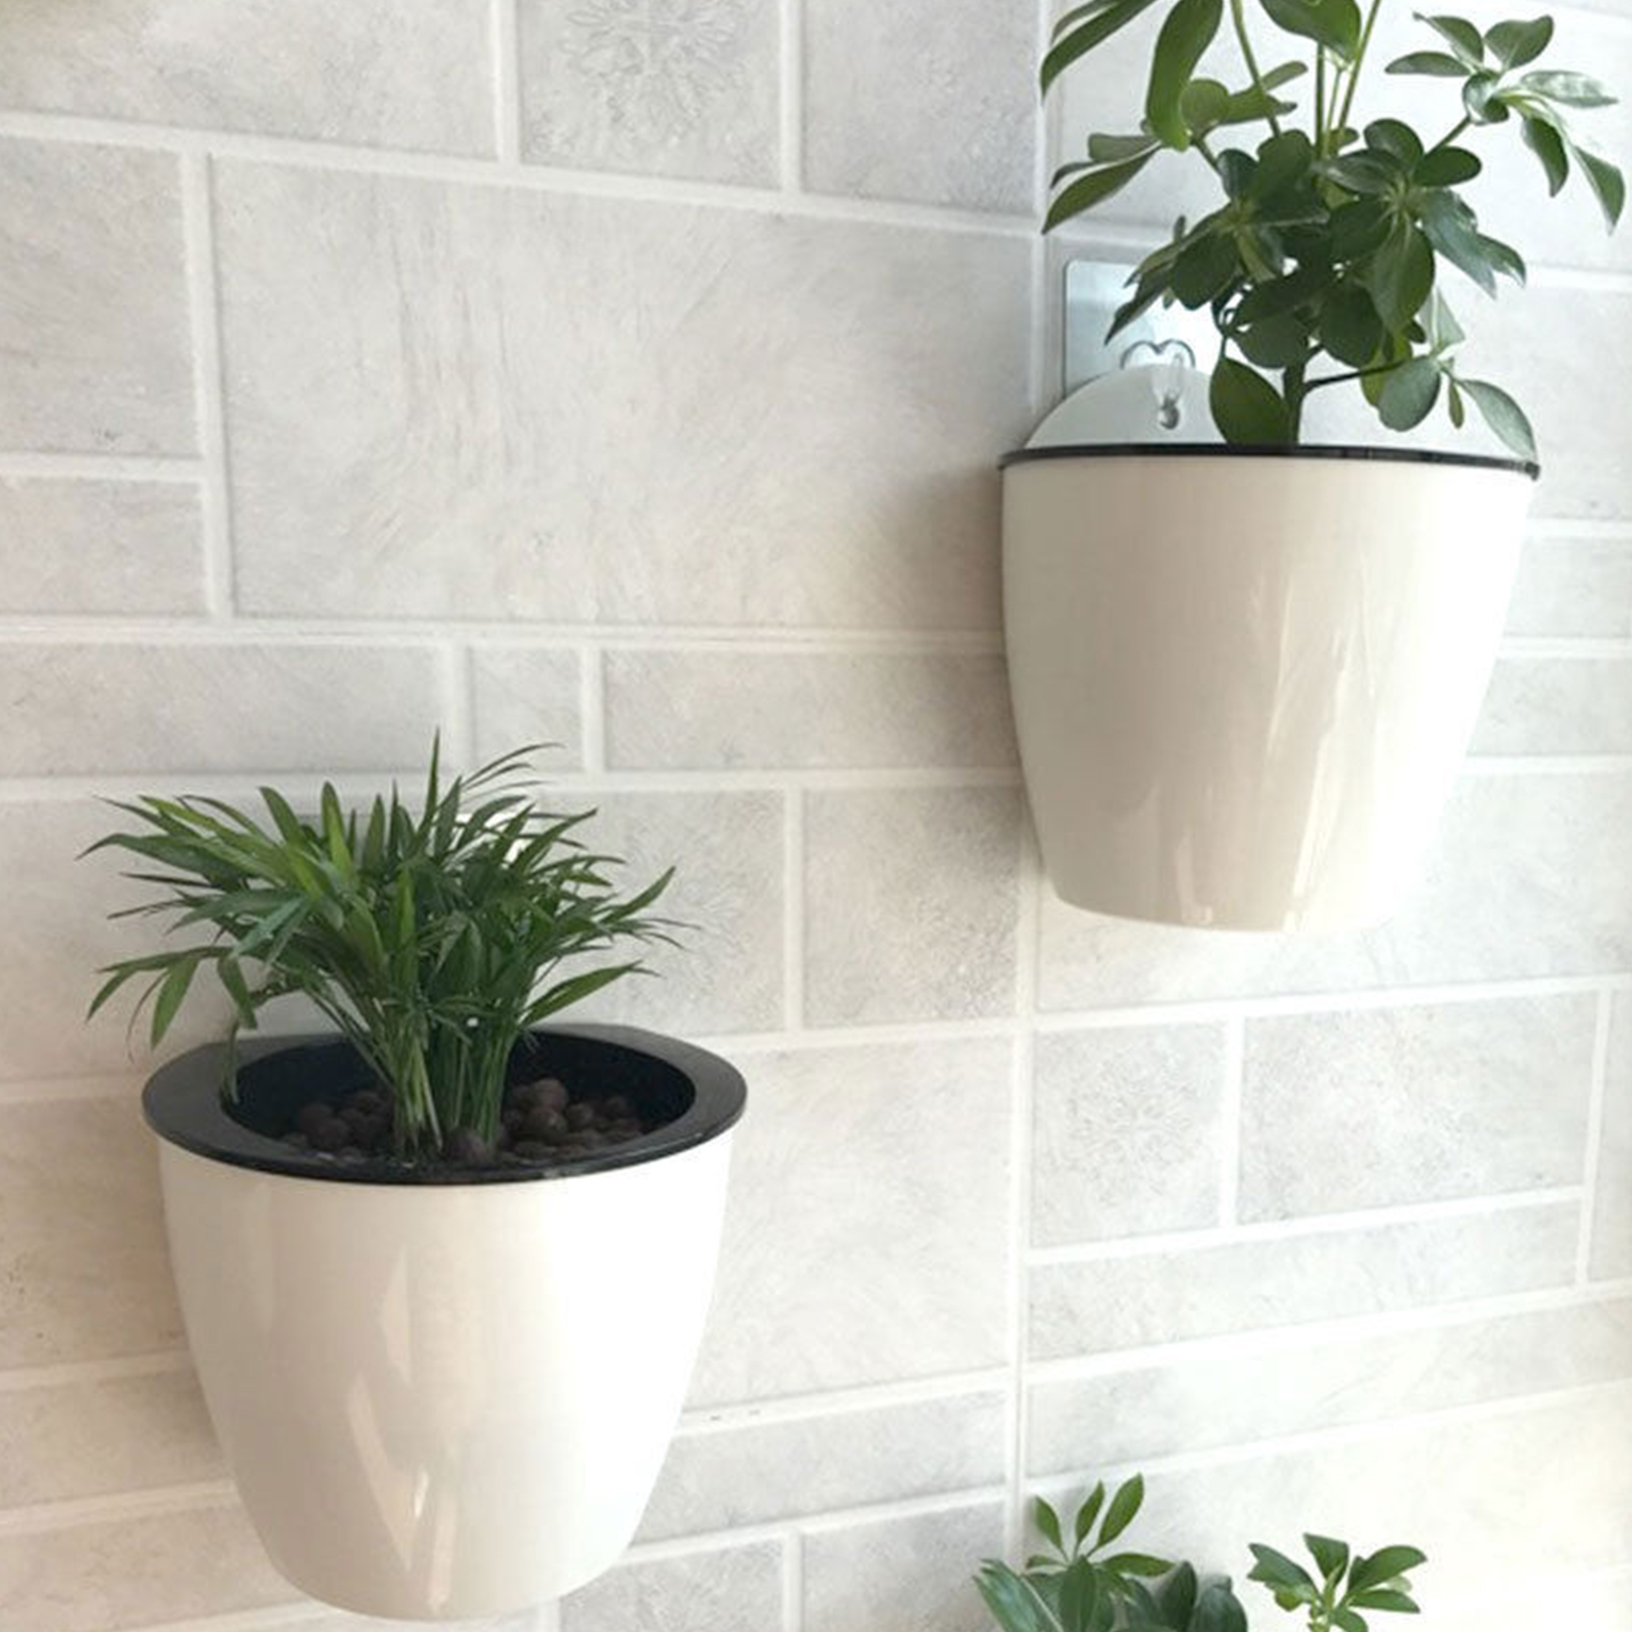 Outdoor Wall Hanging Planters Creative Self Watering Plant Flower Pot Wall Hanging